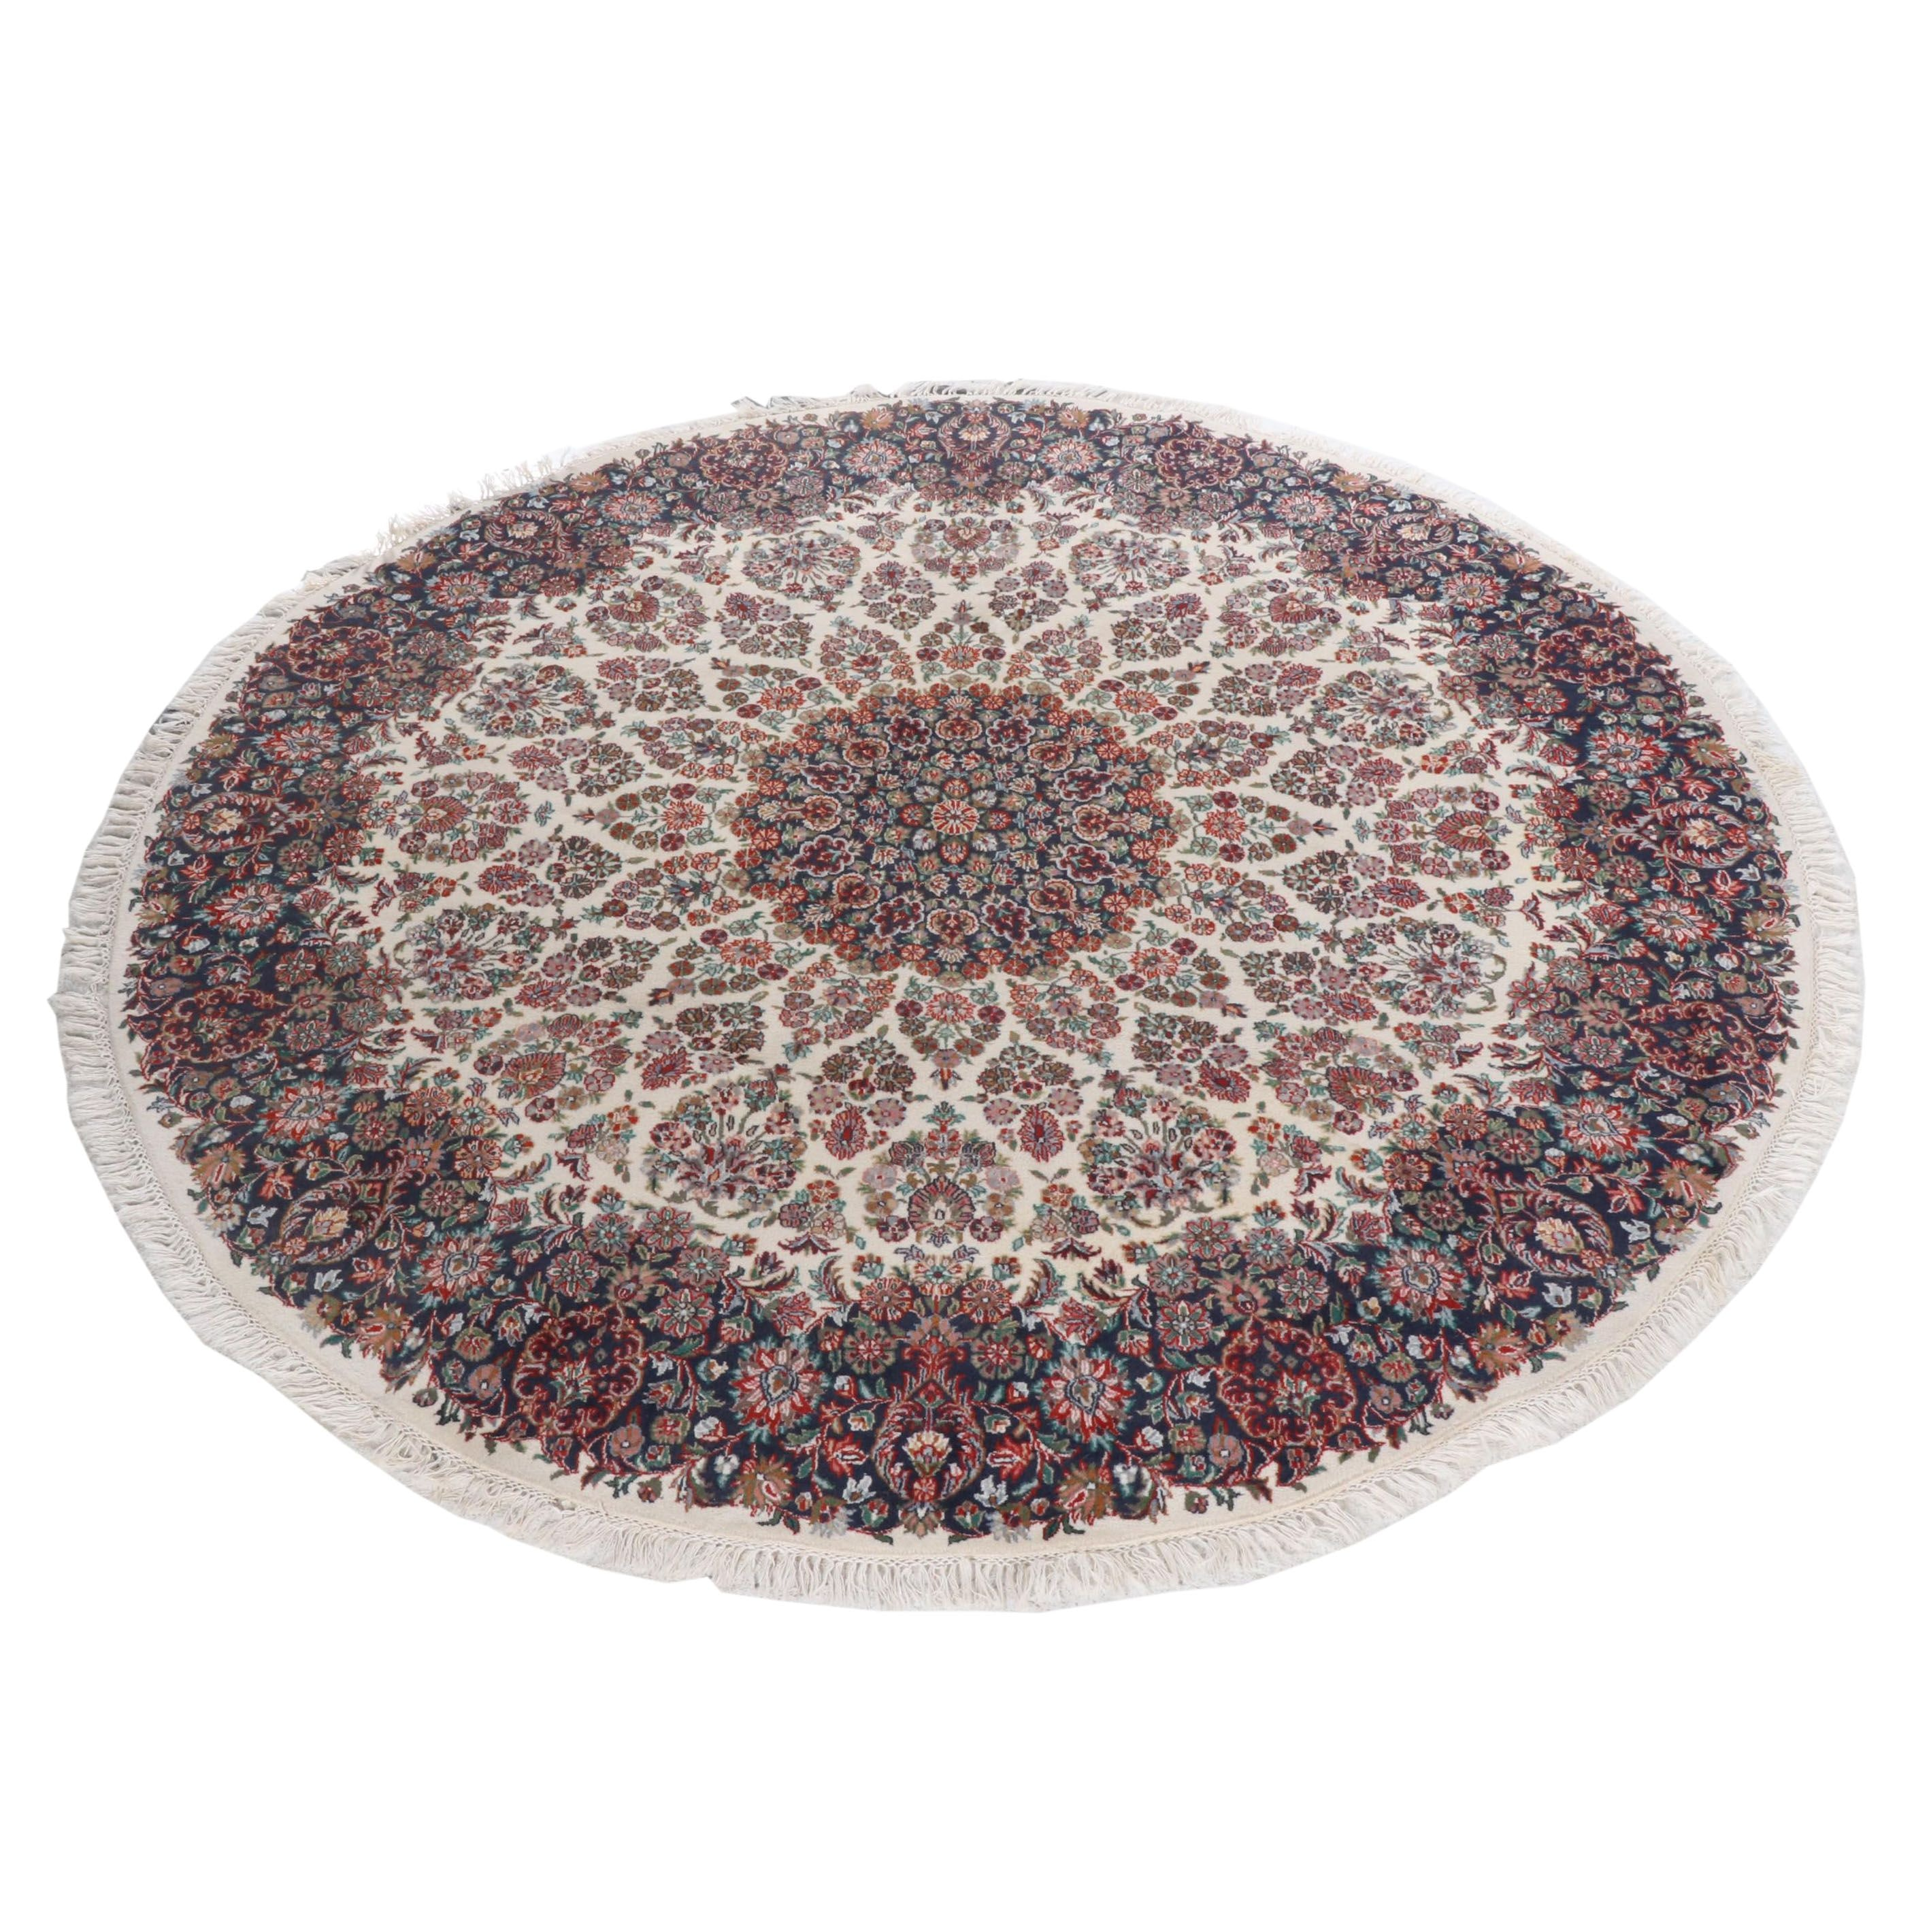 Hand-Knotted Indo-Persian Kerman Wool Round Rug